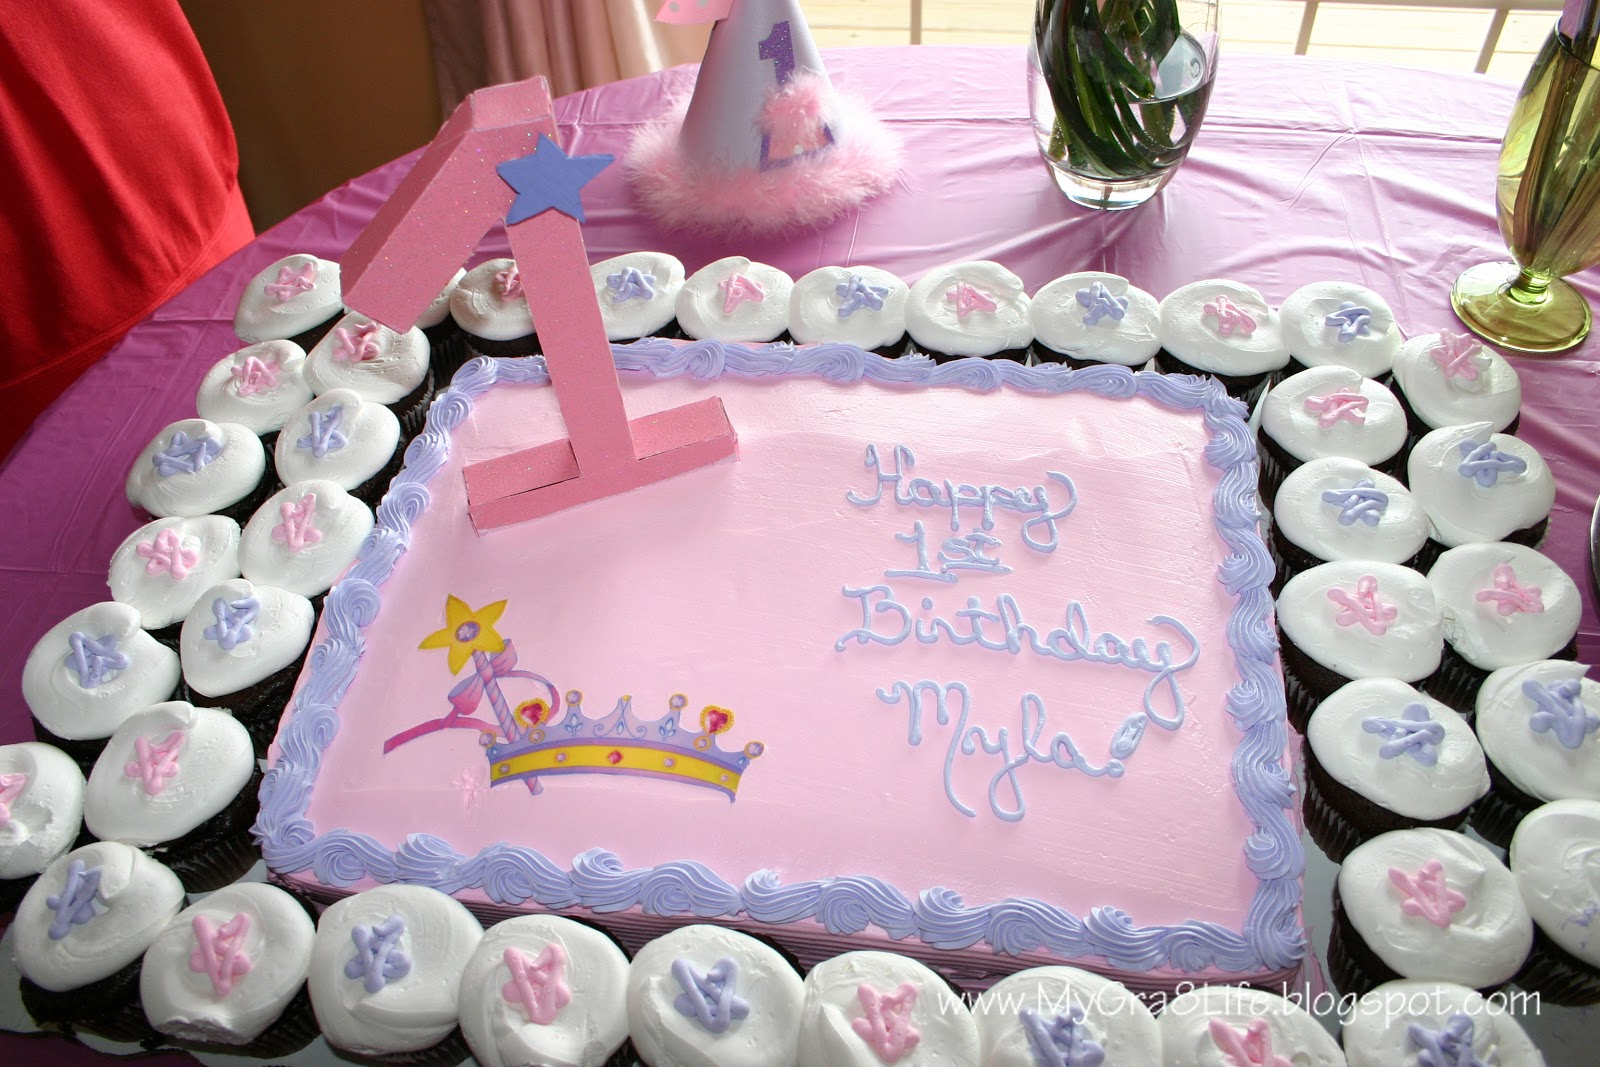 sams club bakery birthday cake designs